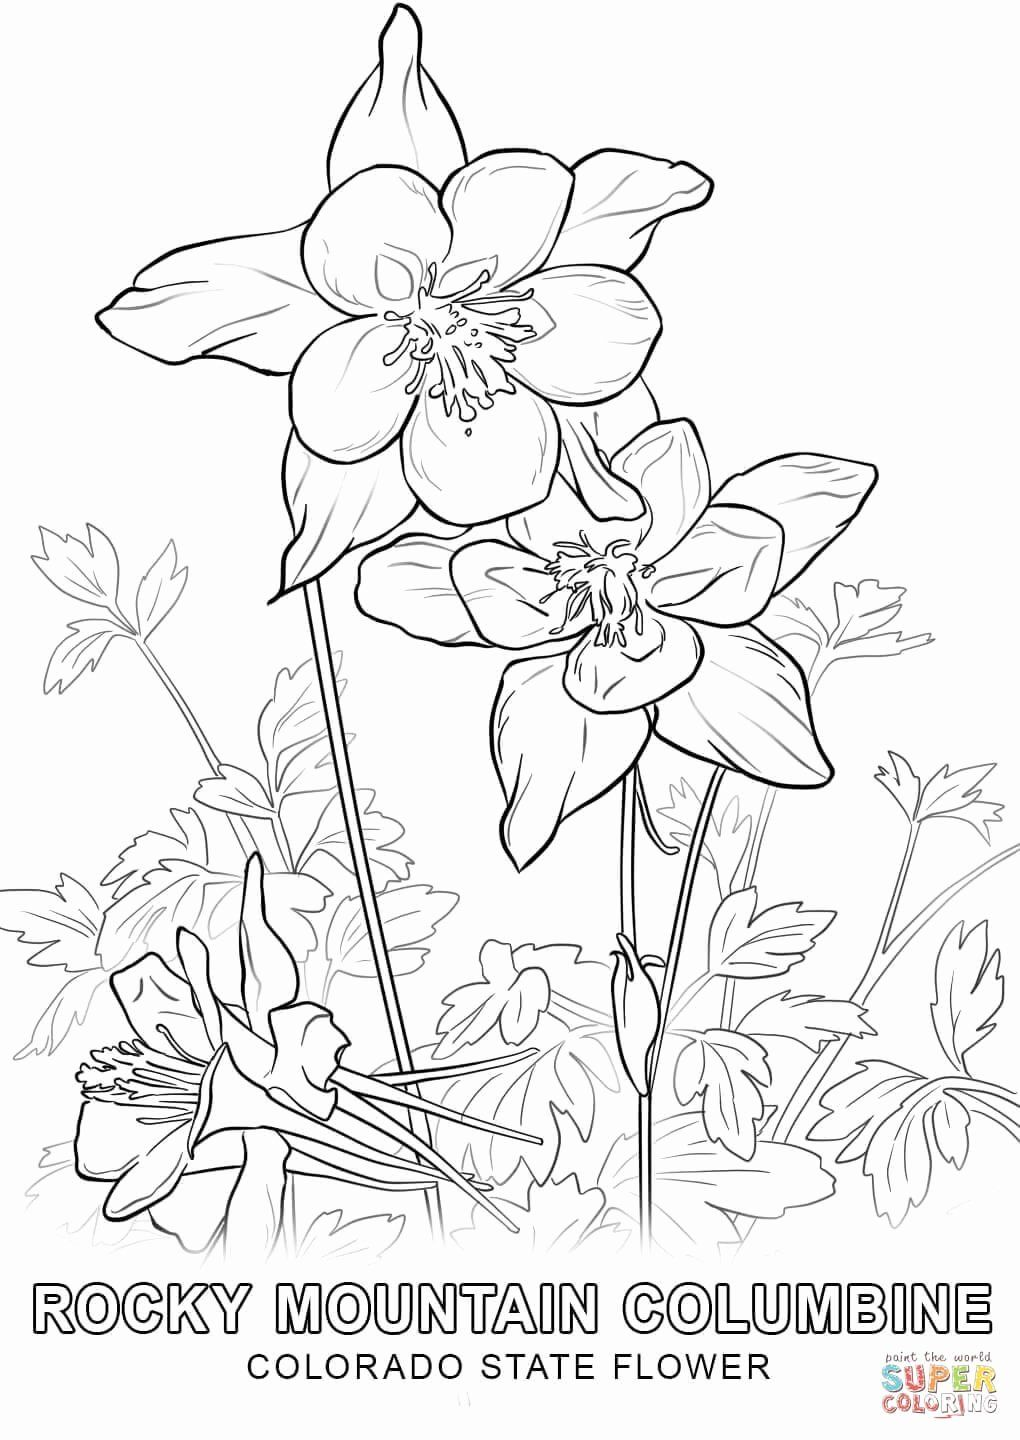 Flowers Coloring Sheets Pdf Inspirational Arizona State Flower Coloring Page Merseybasin Flower Coloring Pages Flower Drawing Bird Coloring Pages